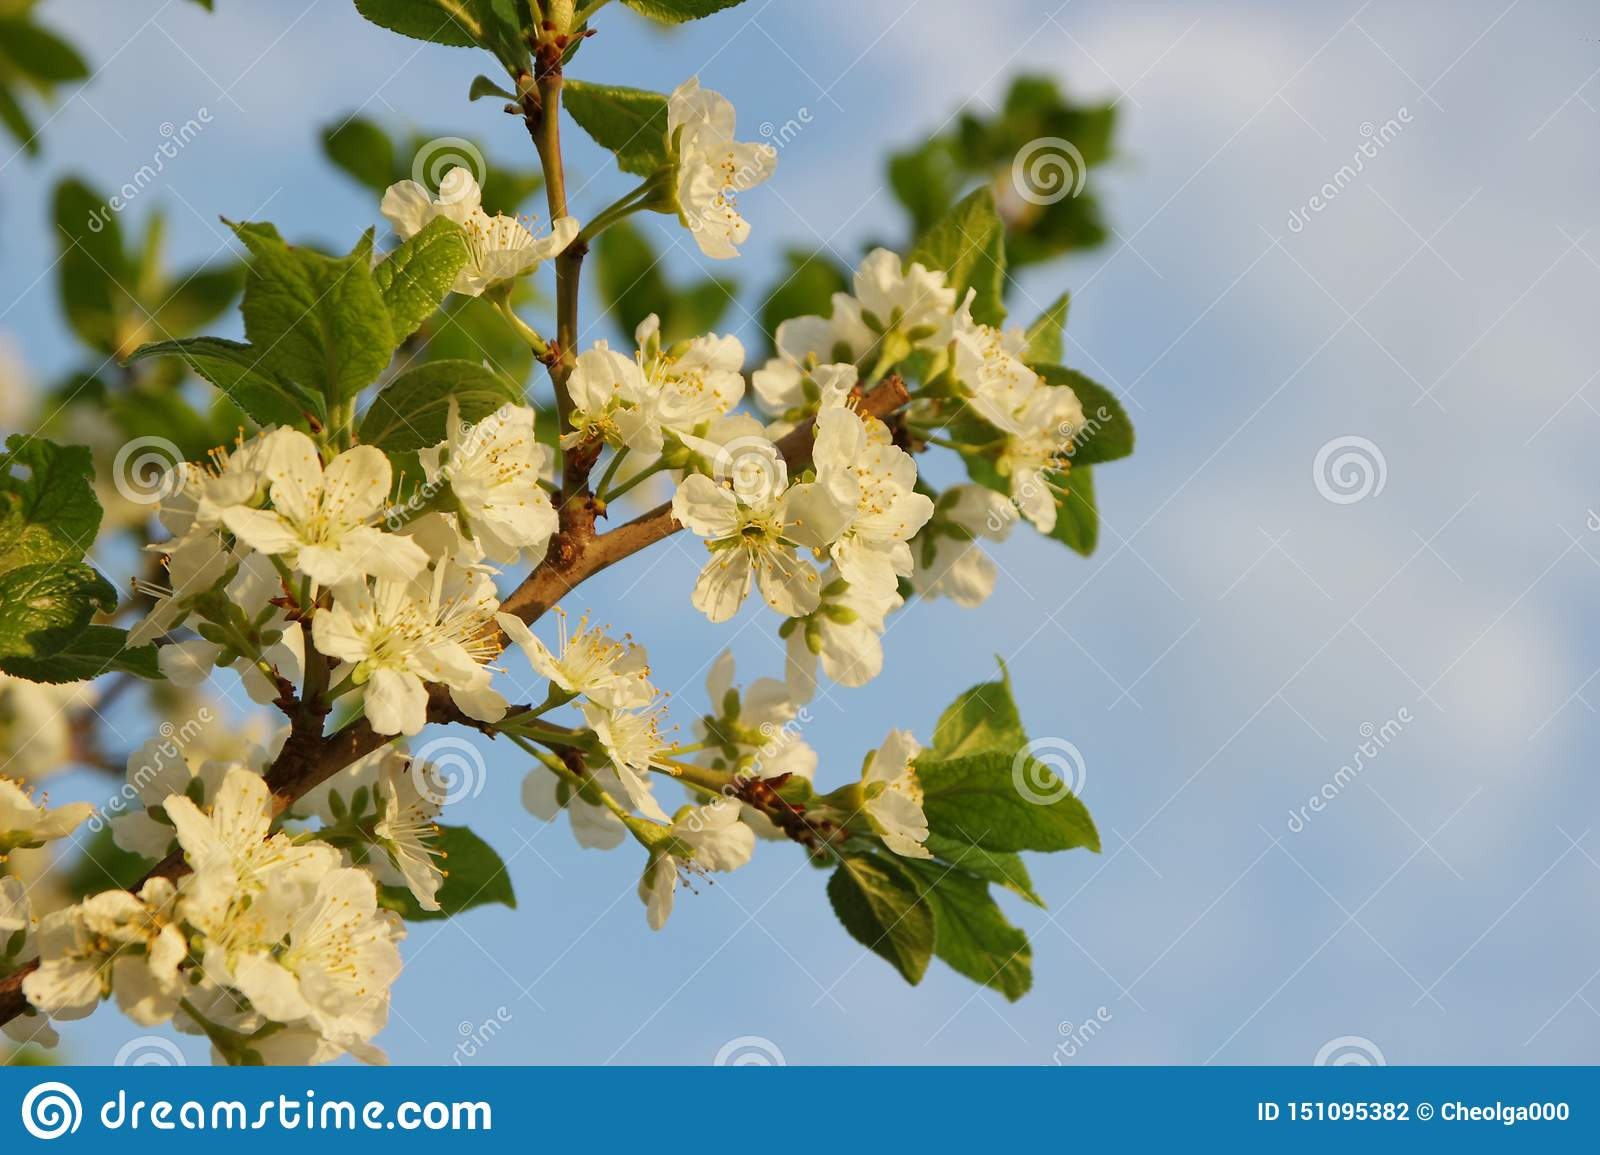 White flowers of an apple tree on a branch against a blue sky, selective focus, close-up